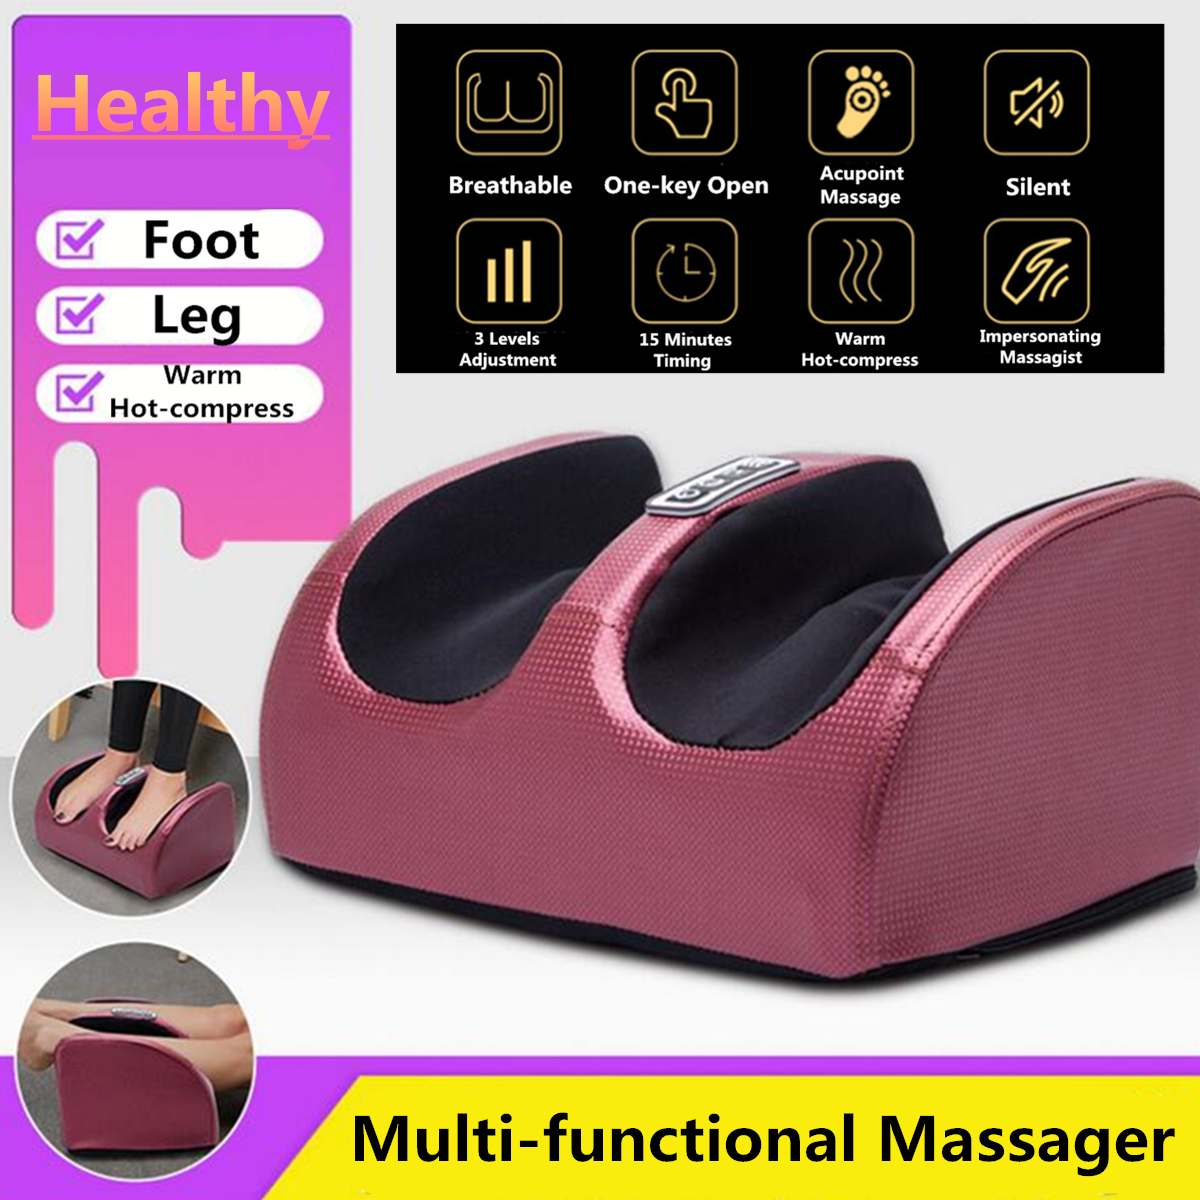 220V Electric Heating Foot Body Massager Relaxation Kneading Roller Vibrator Machine Reflexology Calf Leg Pain Relief Relax220V Electric Heating Foot Body Massager Relaxation Kneading Roller Vibrator Machine Reflexology Calf Leg Pain Relief Relax